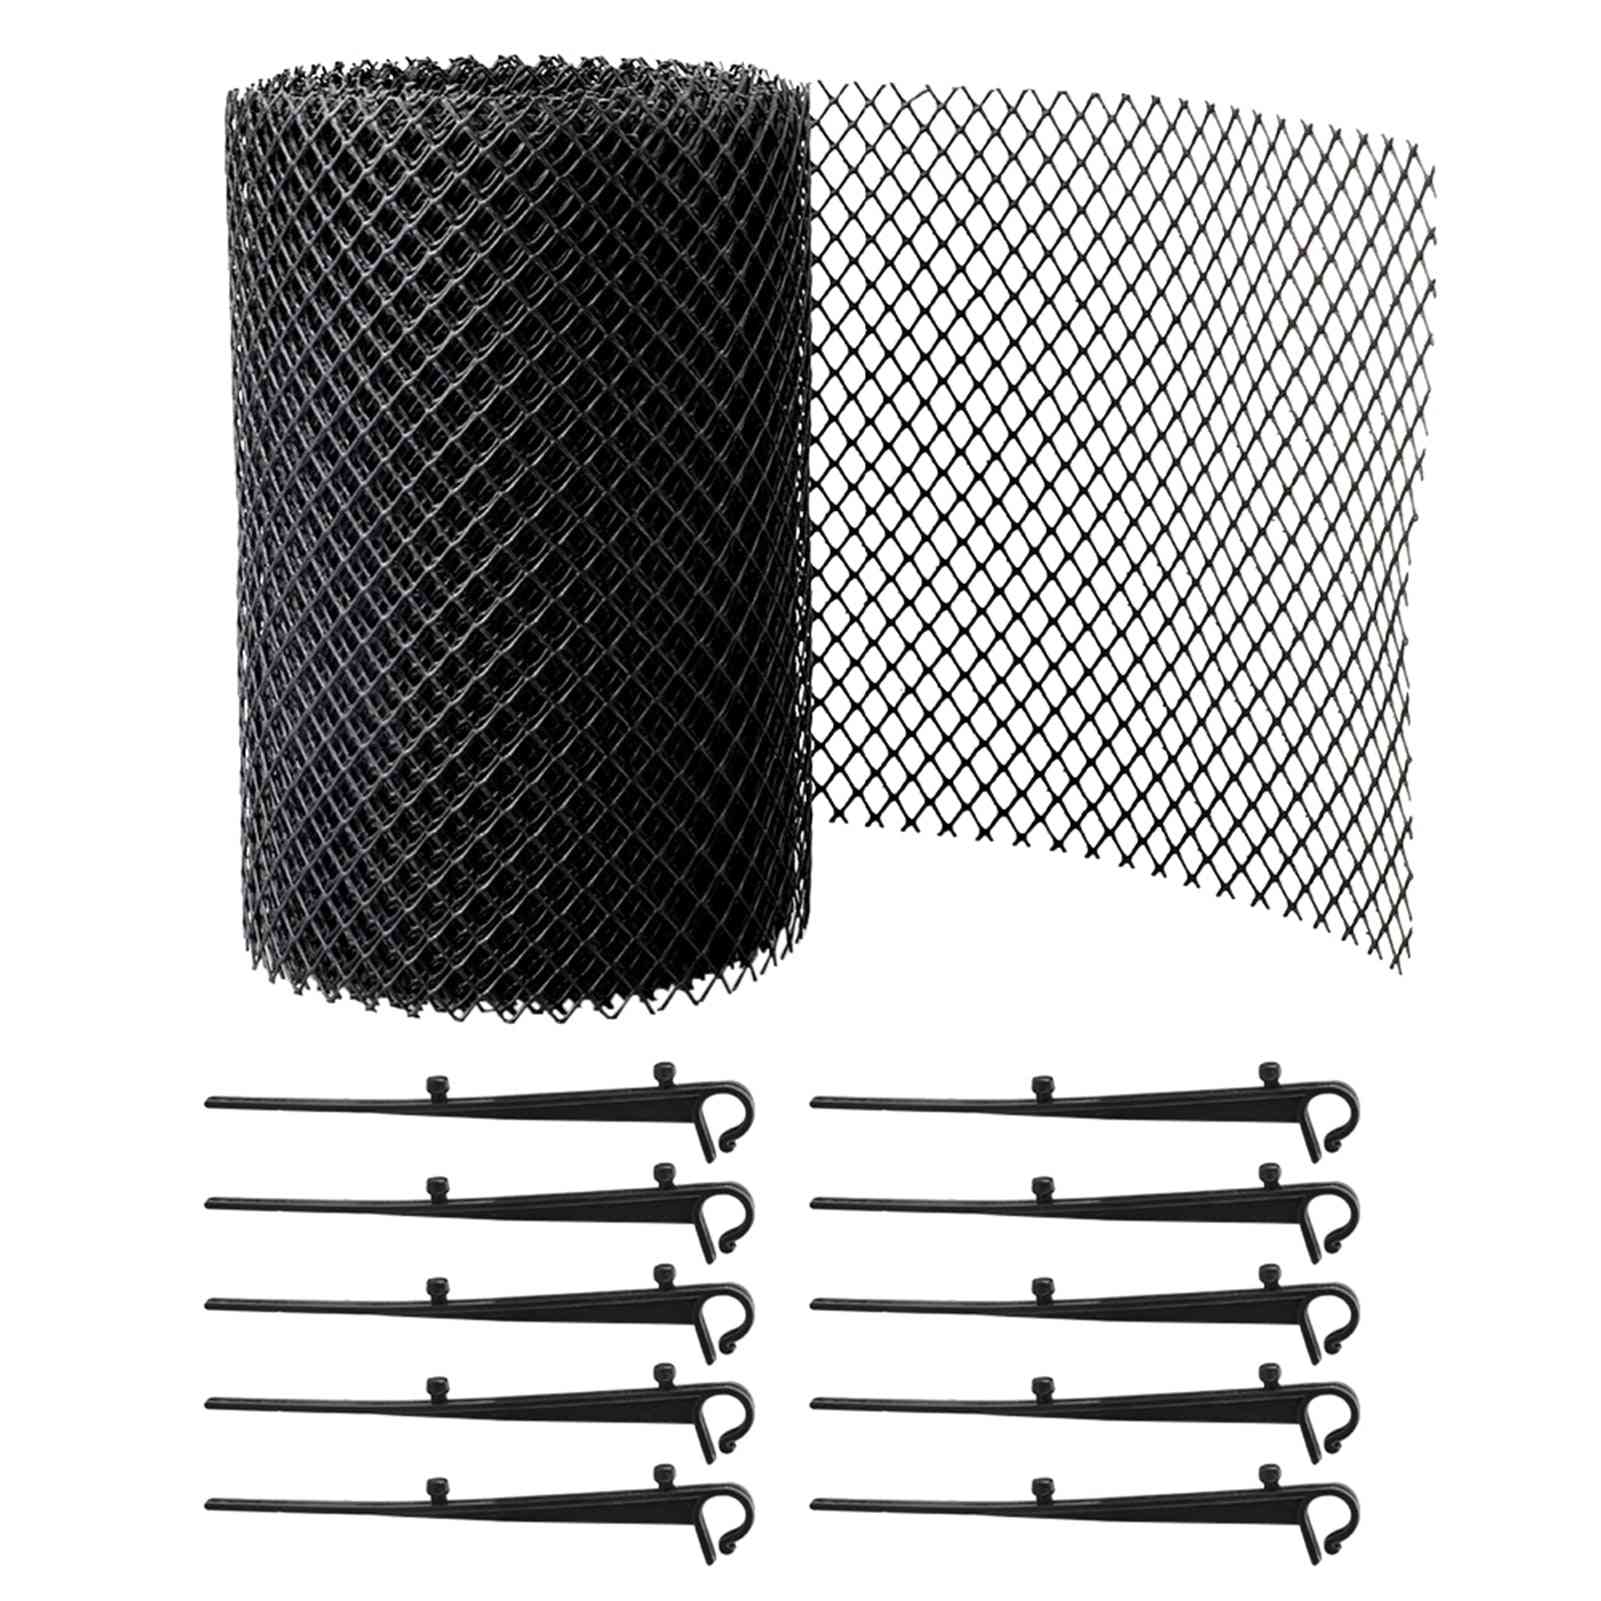 Anti Clogging, Stops Leaves, Reduce Overflow, Outdoor Drain Gutter Guard, Balcony Mesh Cover, Flexible Cleaning Tool